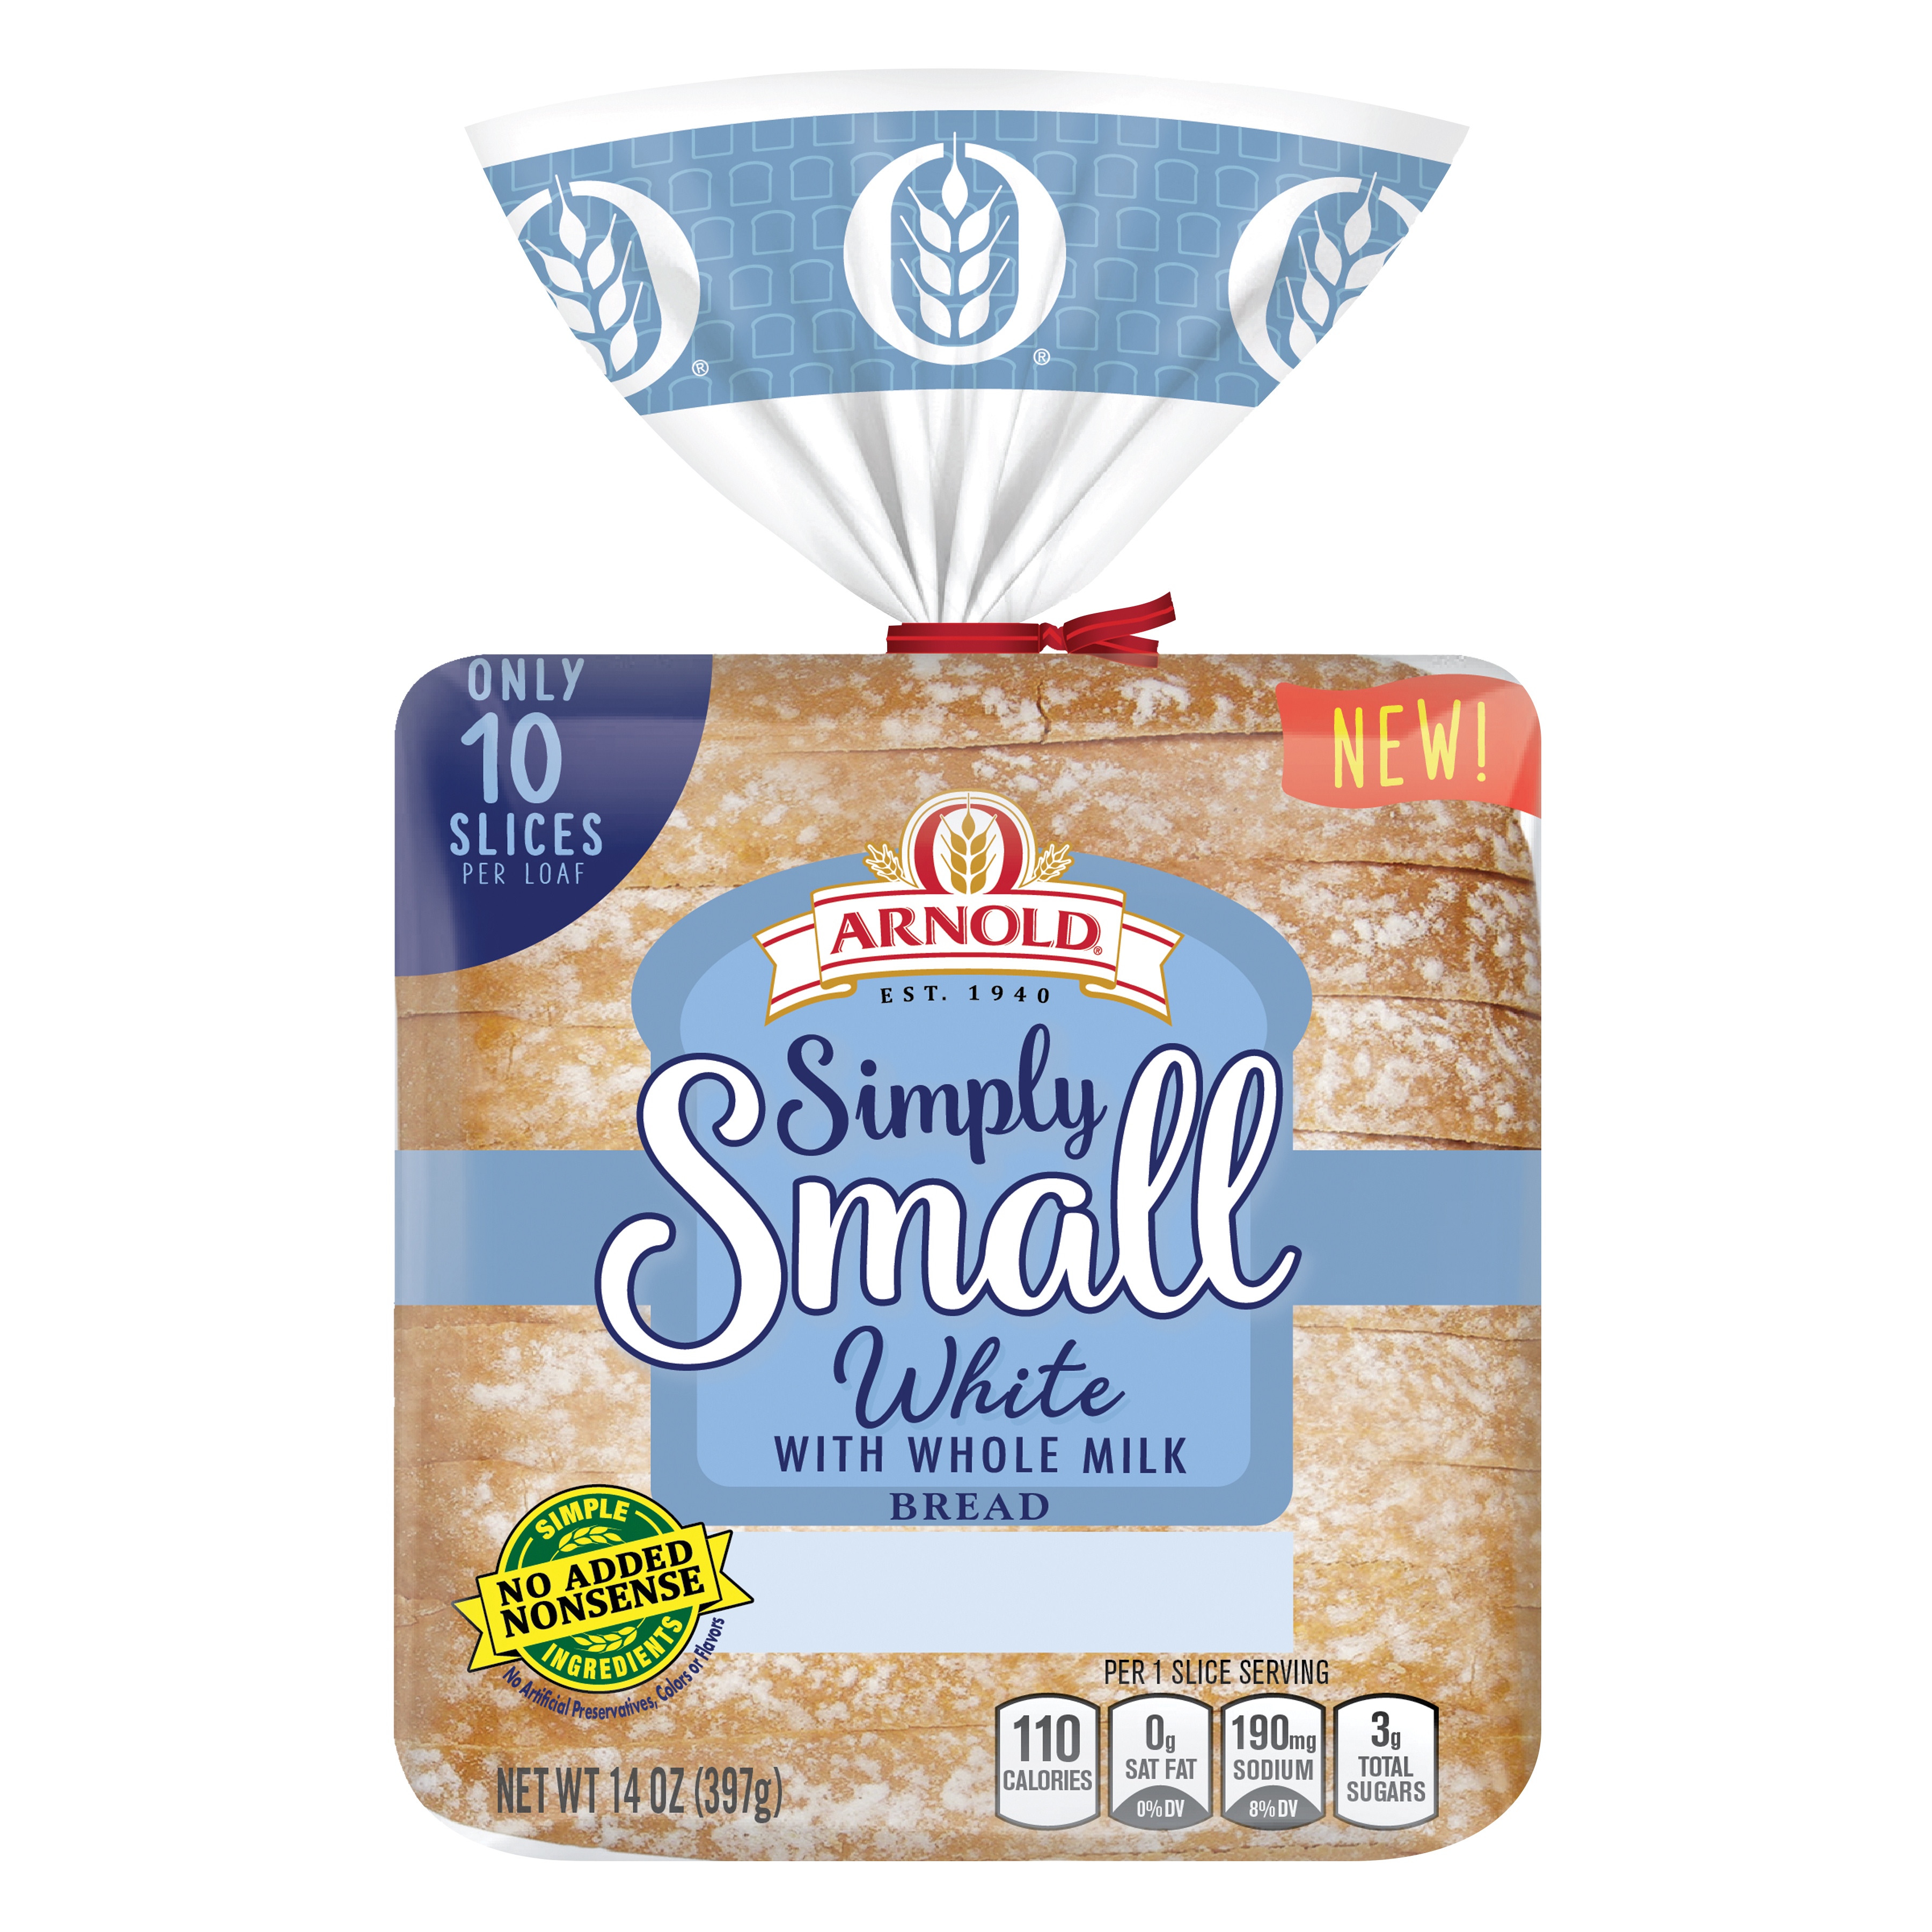 Arnold Simply Small White with Whole Milk Bread Package Image